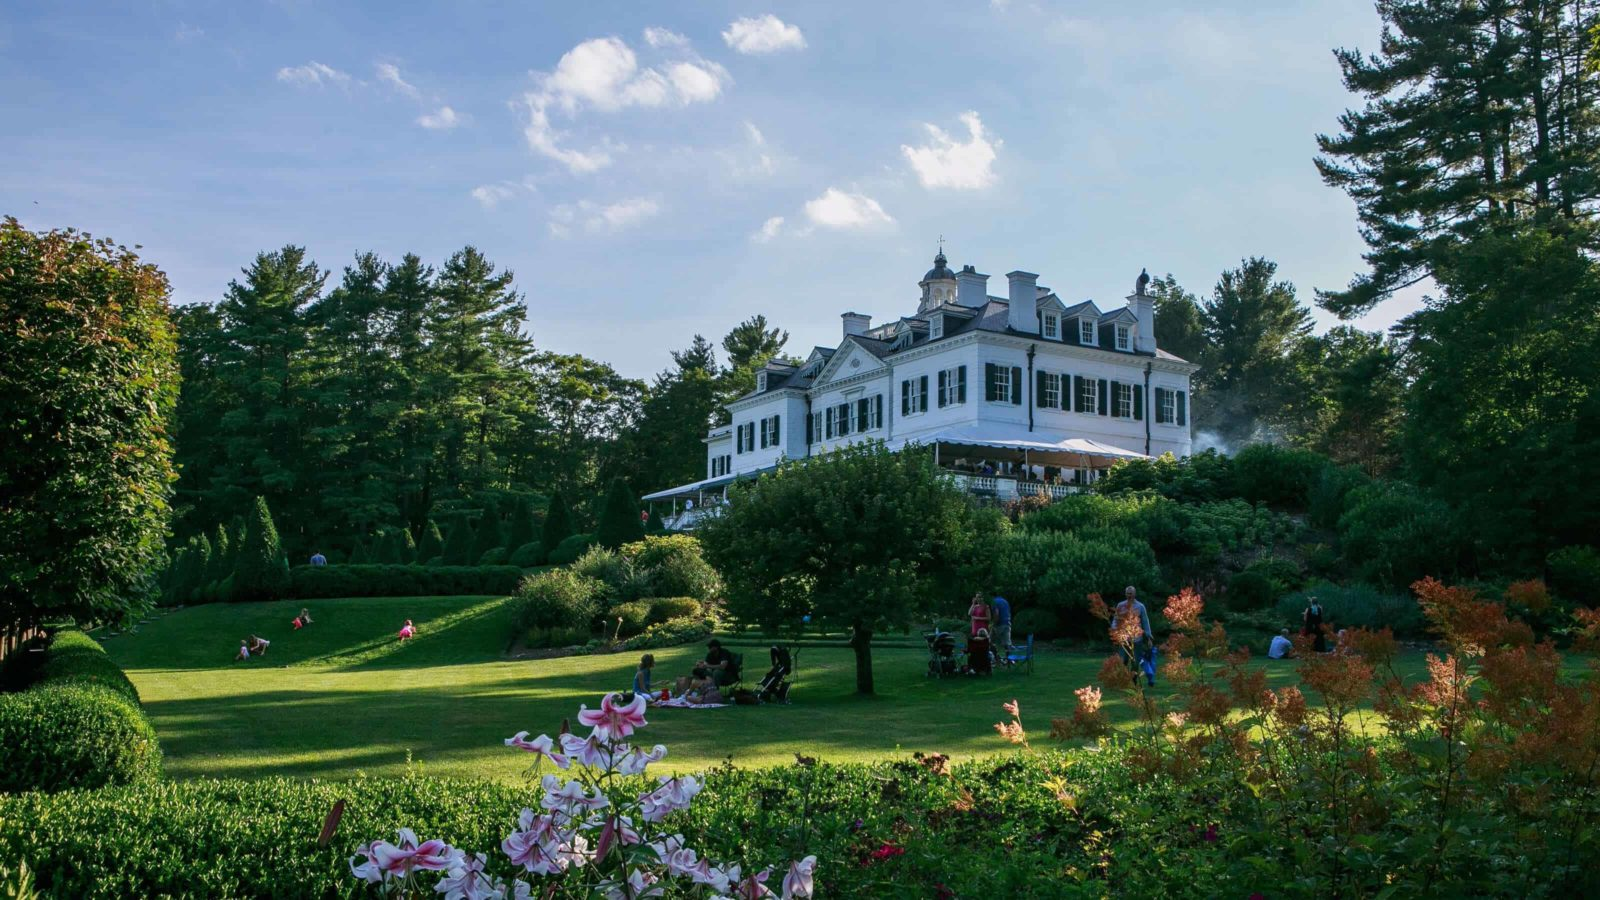 Families picnic on the lawn at the Mount, Edith Wharton's house in Lenox.